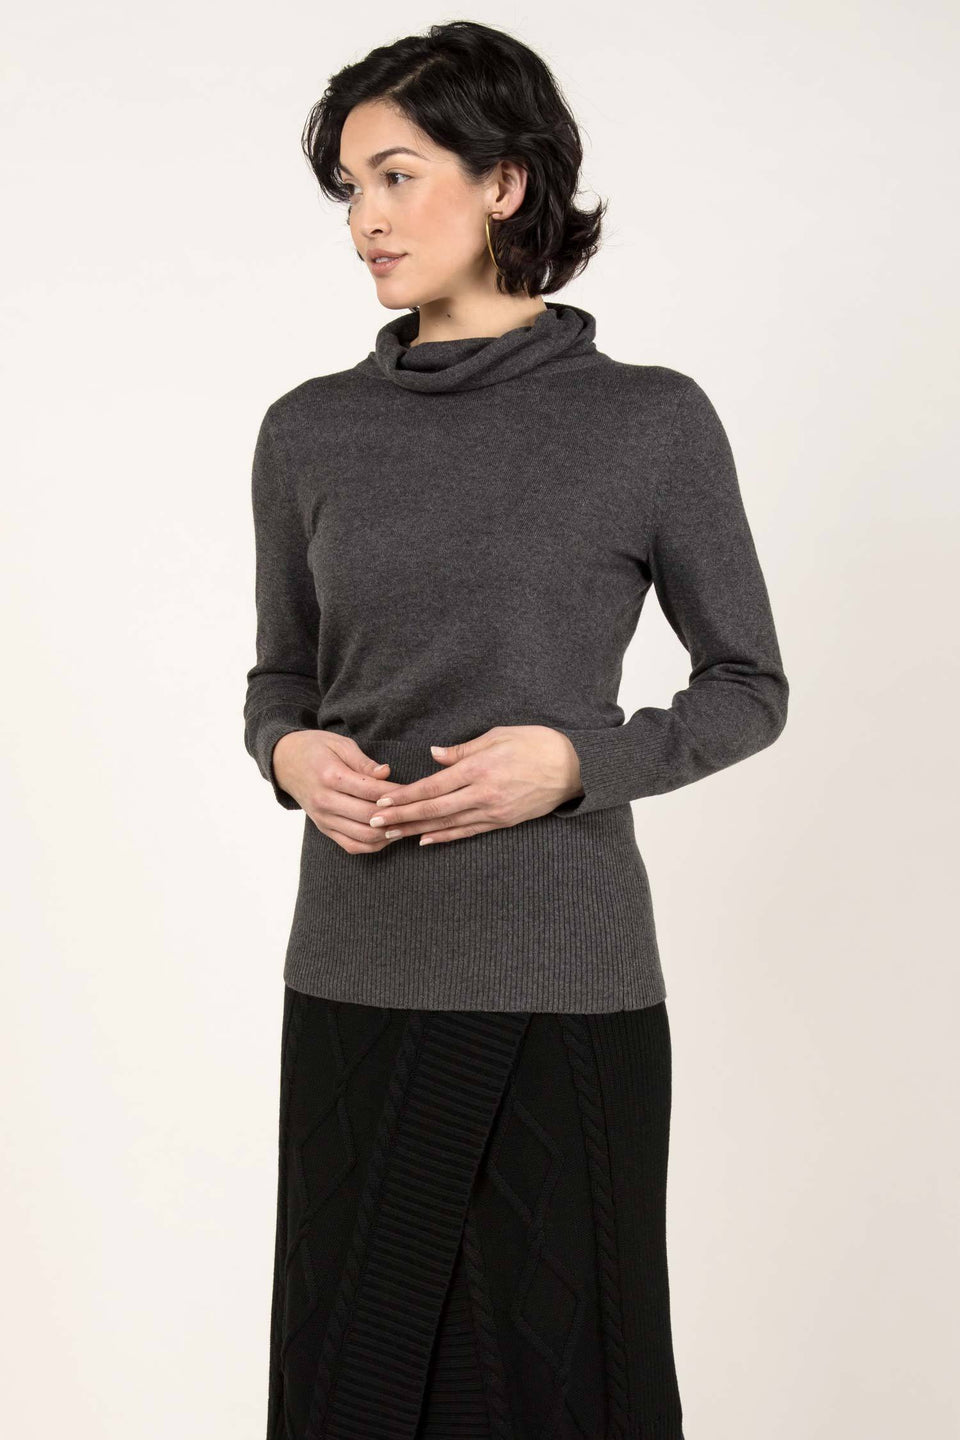 Knit Turtleneck in Charcoal